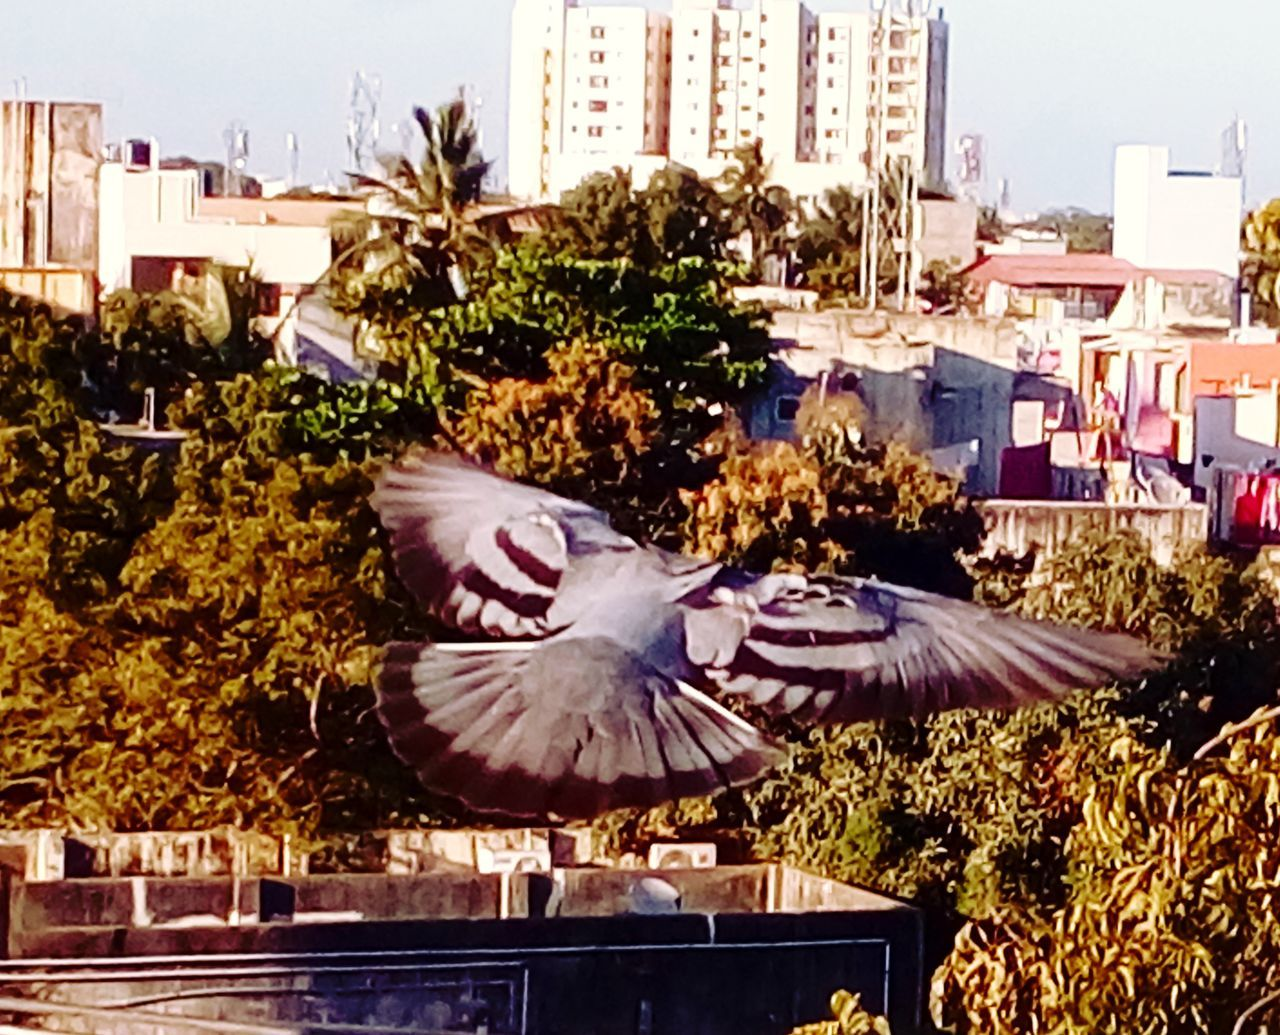 architecture, building exterior, built structure, bird, city, spread wings, animal themes, city life, outdoors, animals in the wild, no people, nature, one animal, flying, day, skyscraper, flower, tree, cityscape, beauty in nature